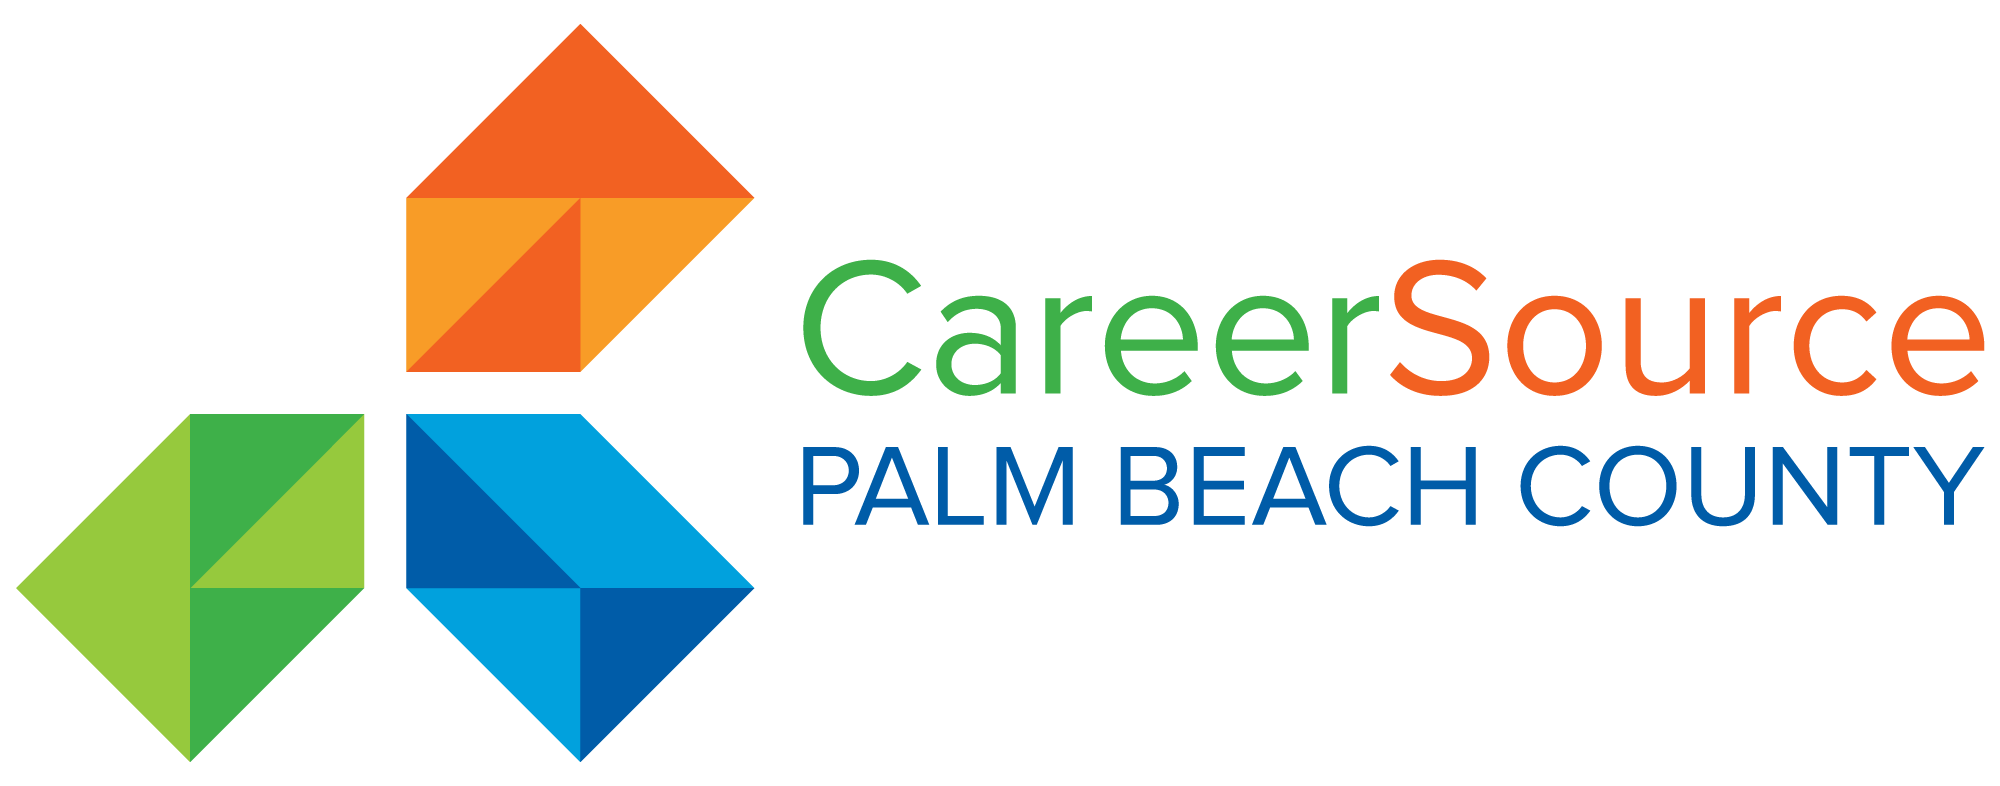 CareerSource Palm Beach County